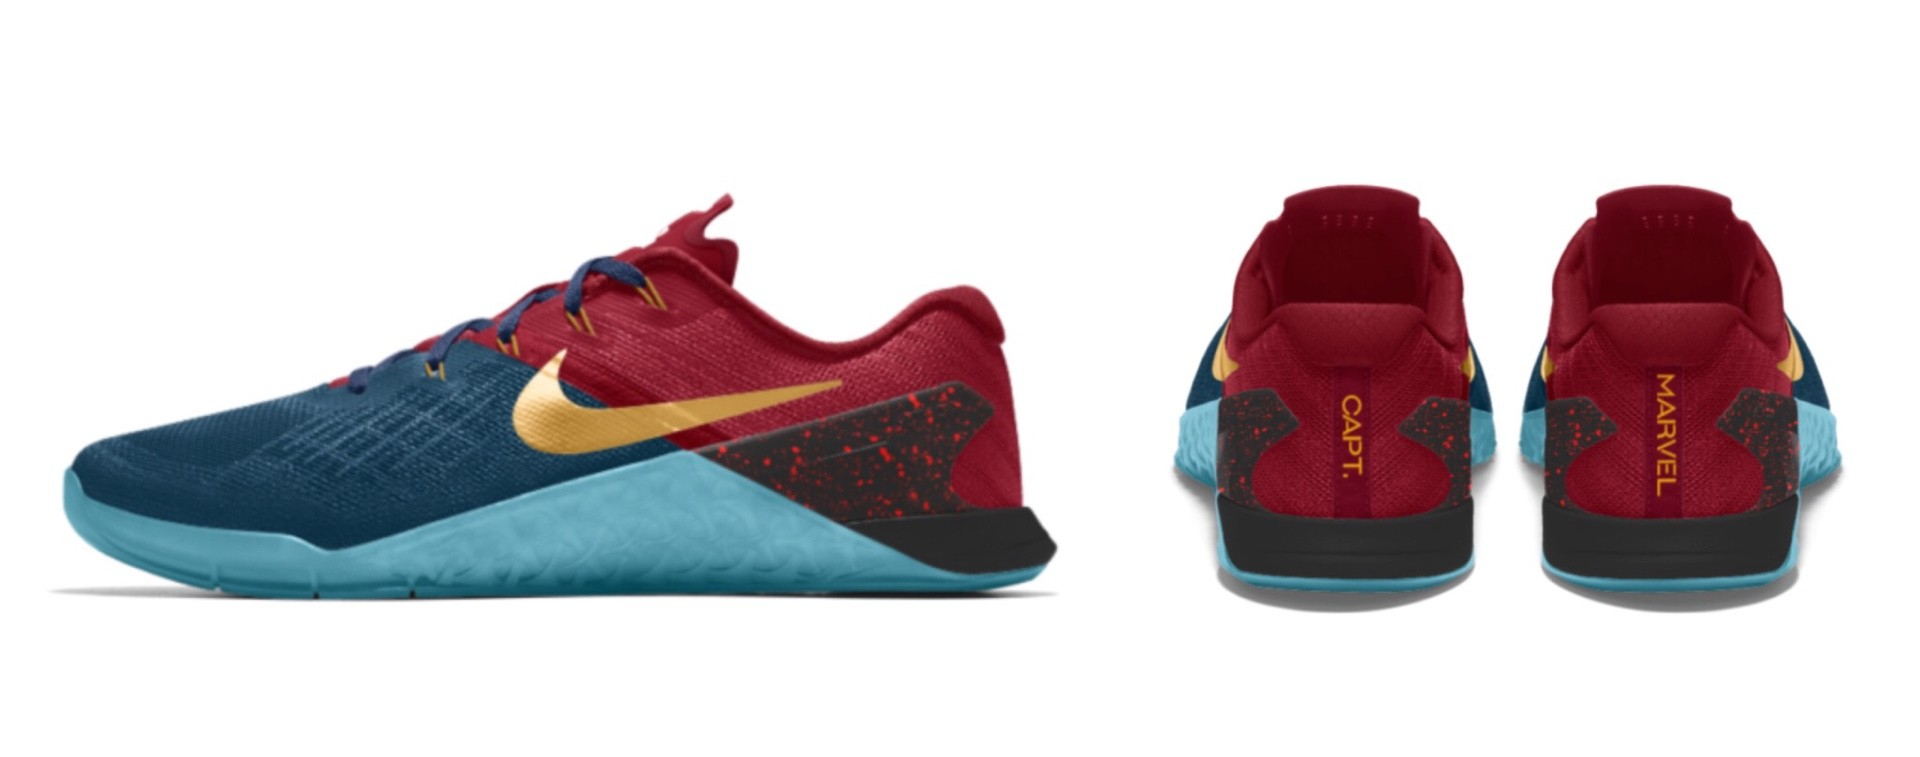 Captain Marvel-inspired Nike running shoes. ($150)